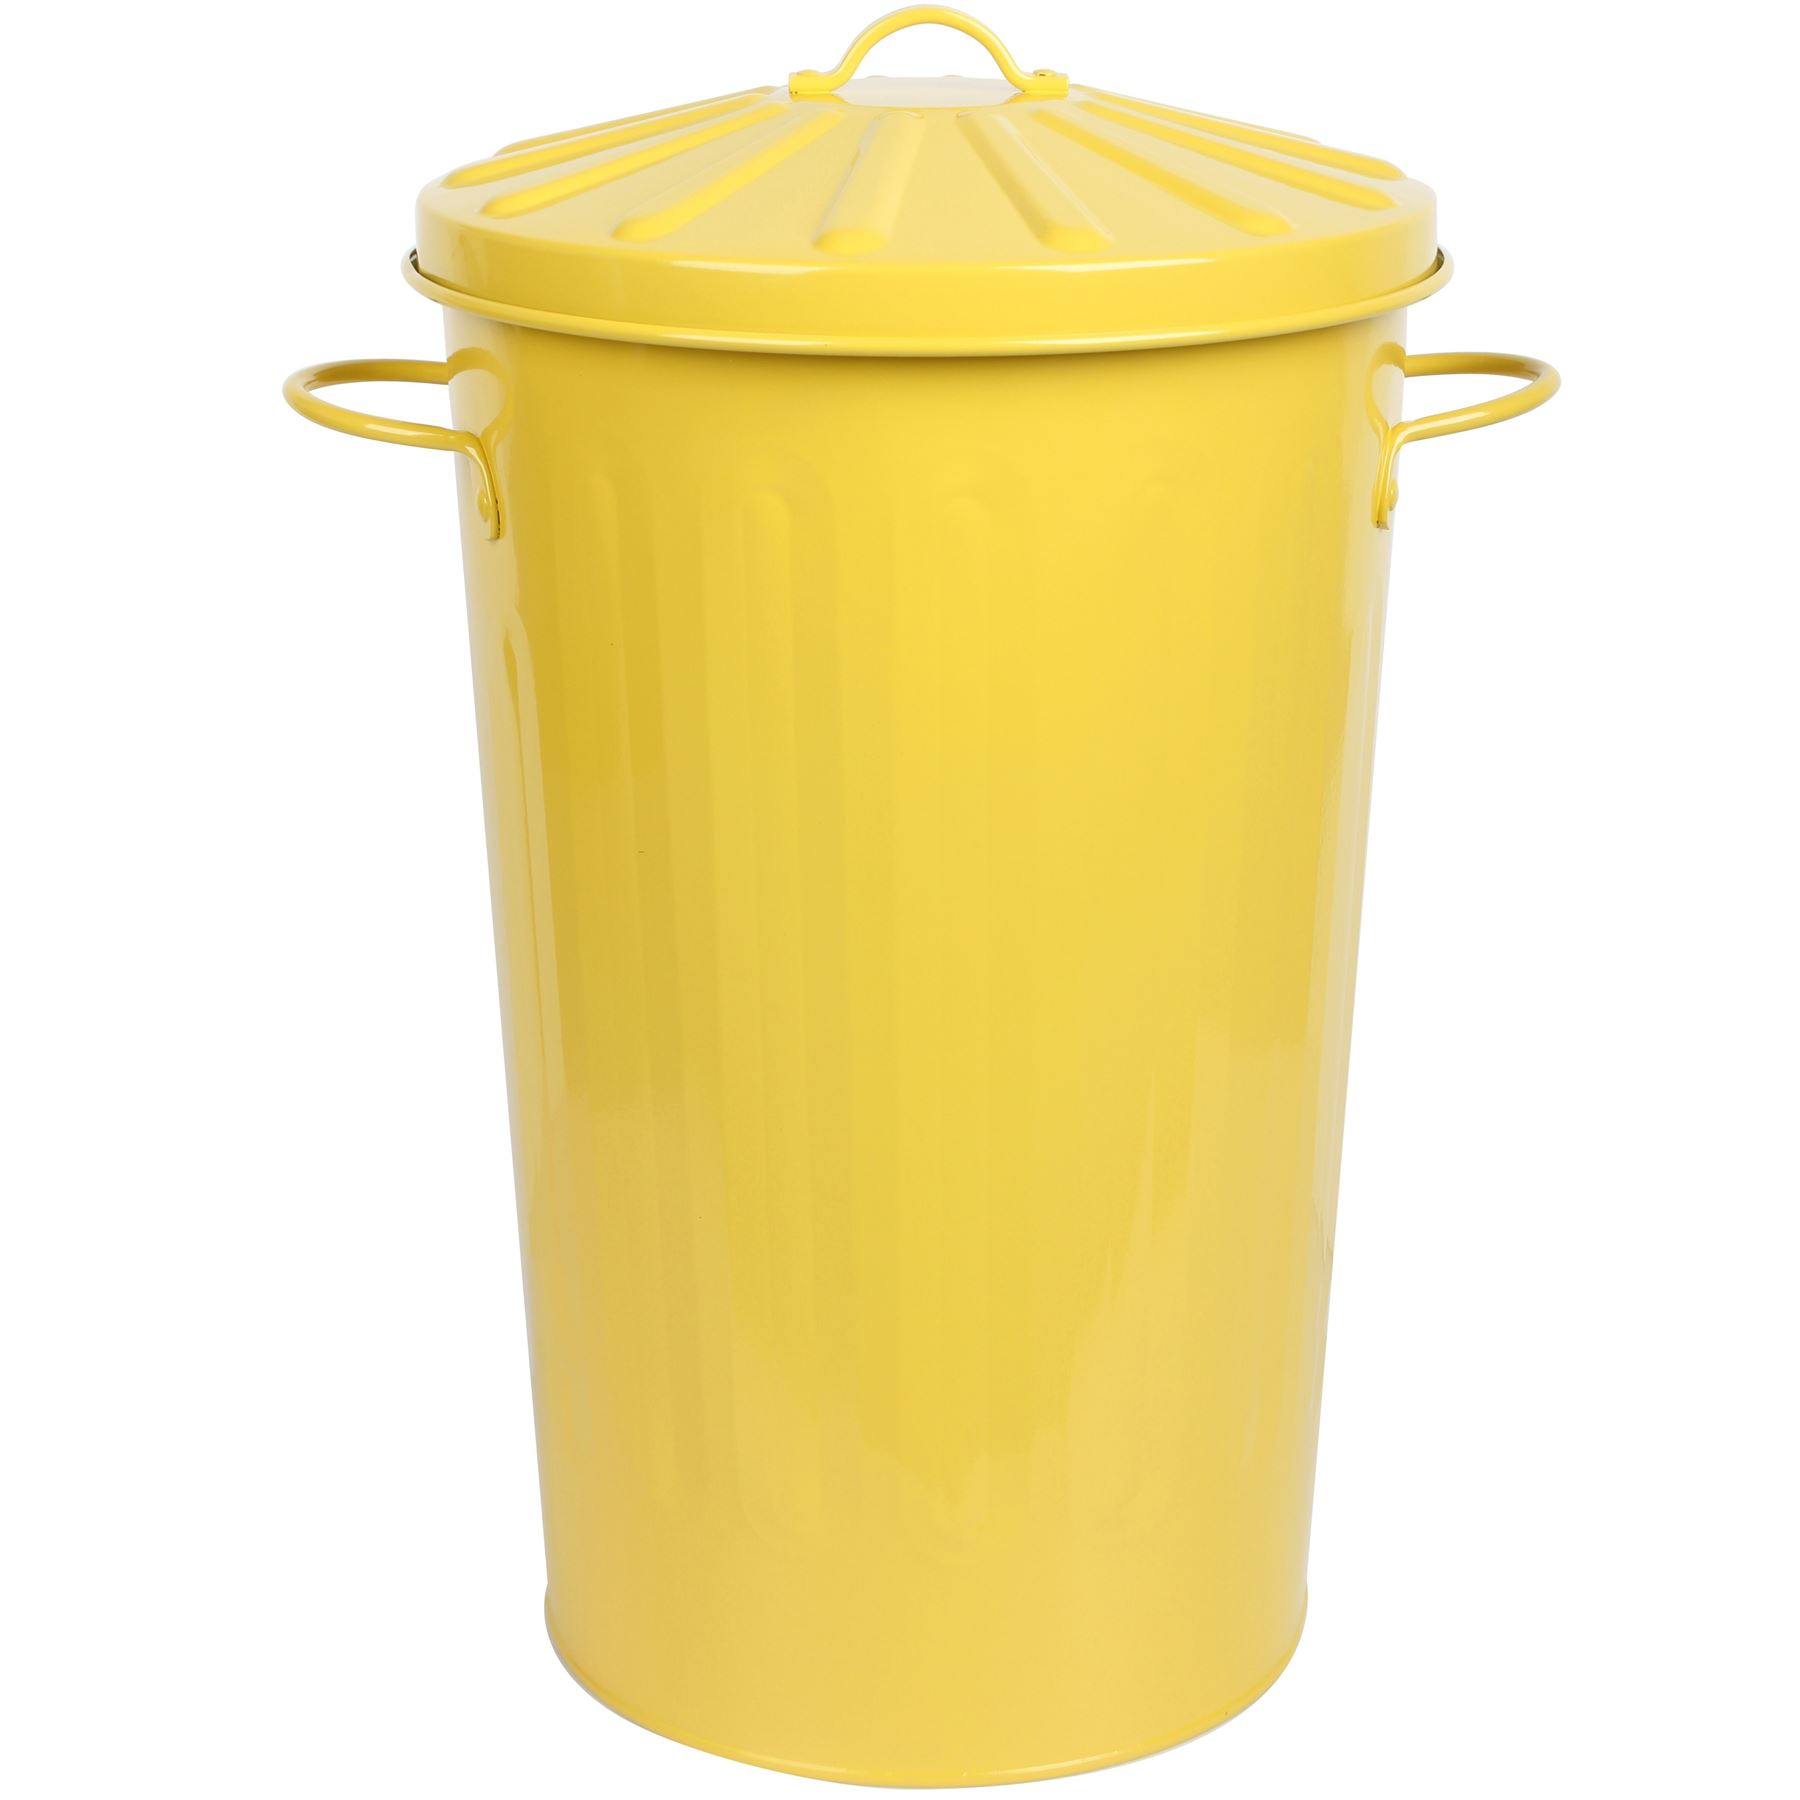 Small Metal Trash Cans With Lids Crazygadget 18 Litre Metal Small Round Dustbin Paper